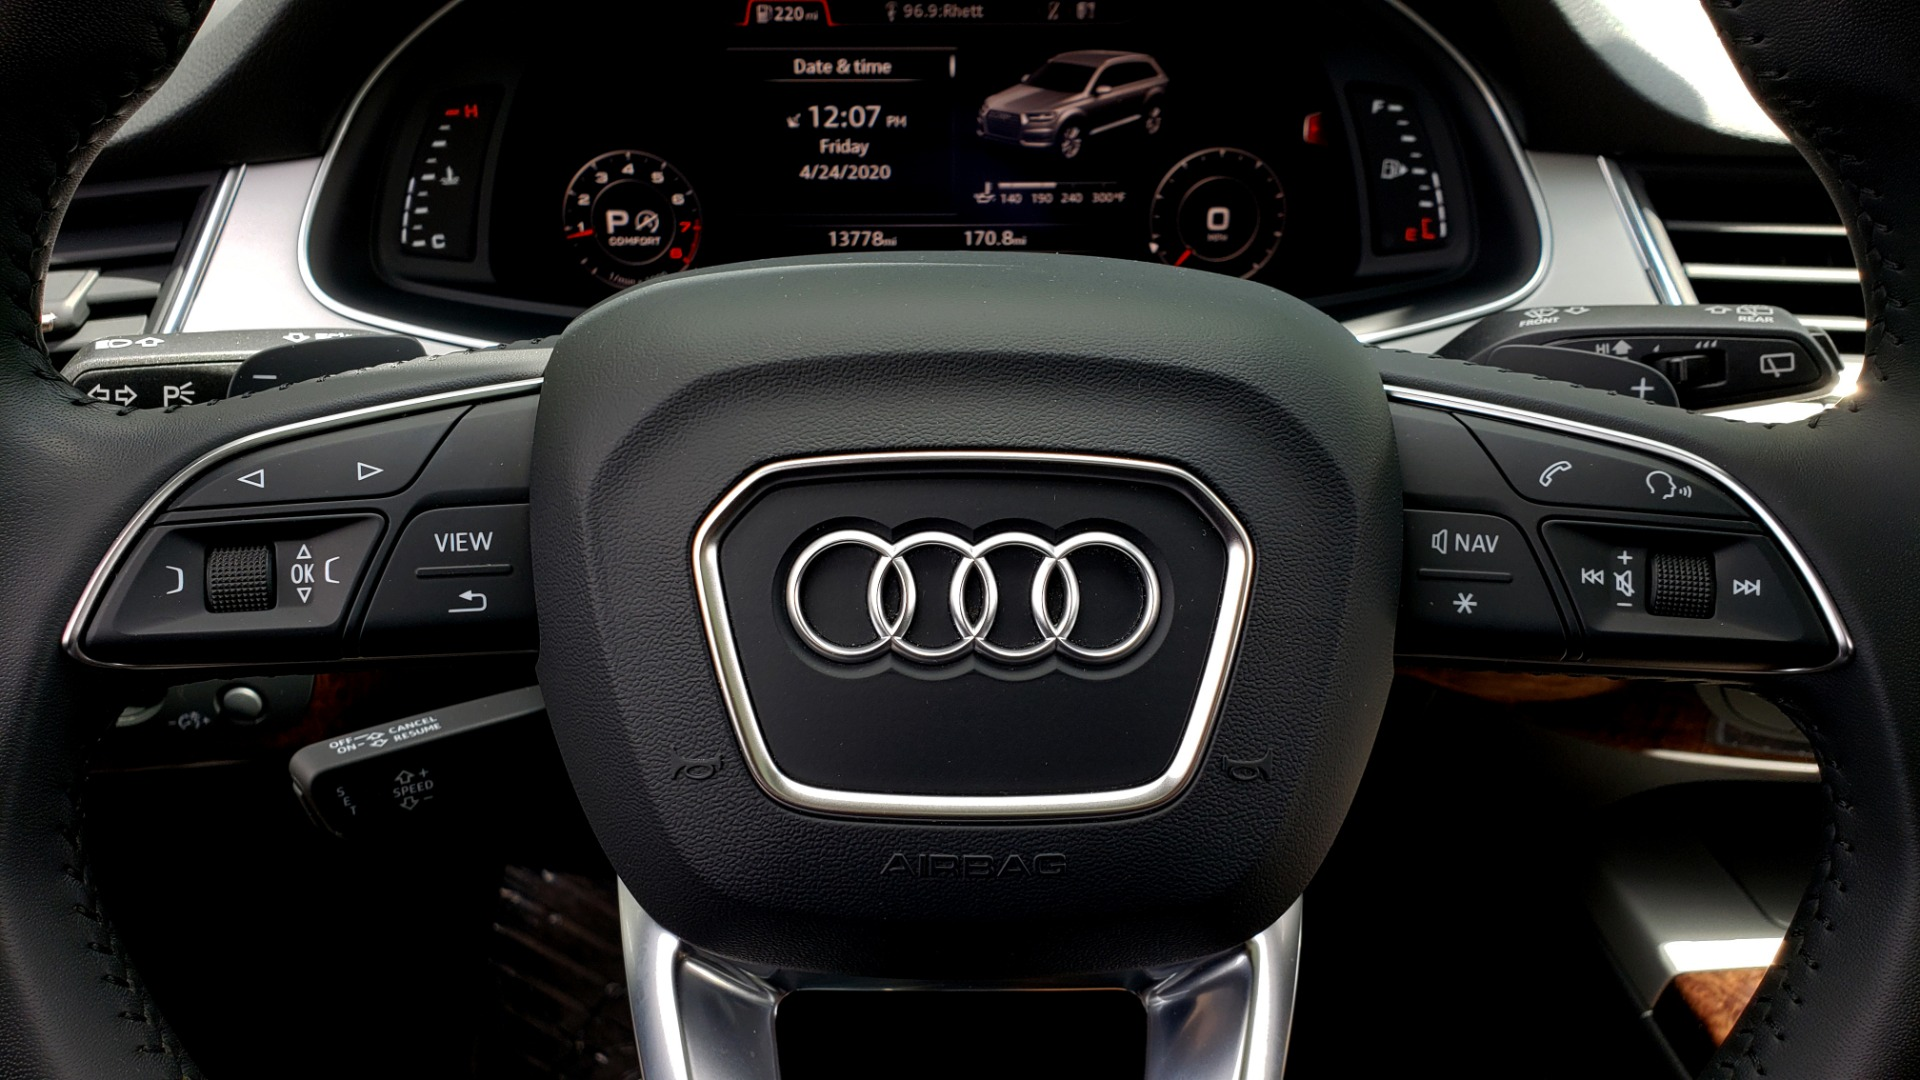 Used 2017 Audi Q7 PREMIUM PLUS / VISION PKG / NAV / PANO-ROOF / 3-ROW / REARVIEW for sale Sold at Formula Imports in Charlotte NC 28227 39